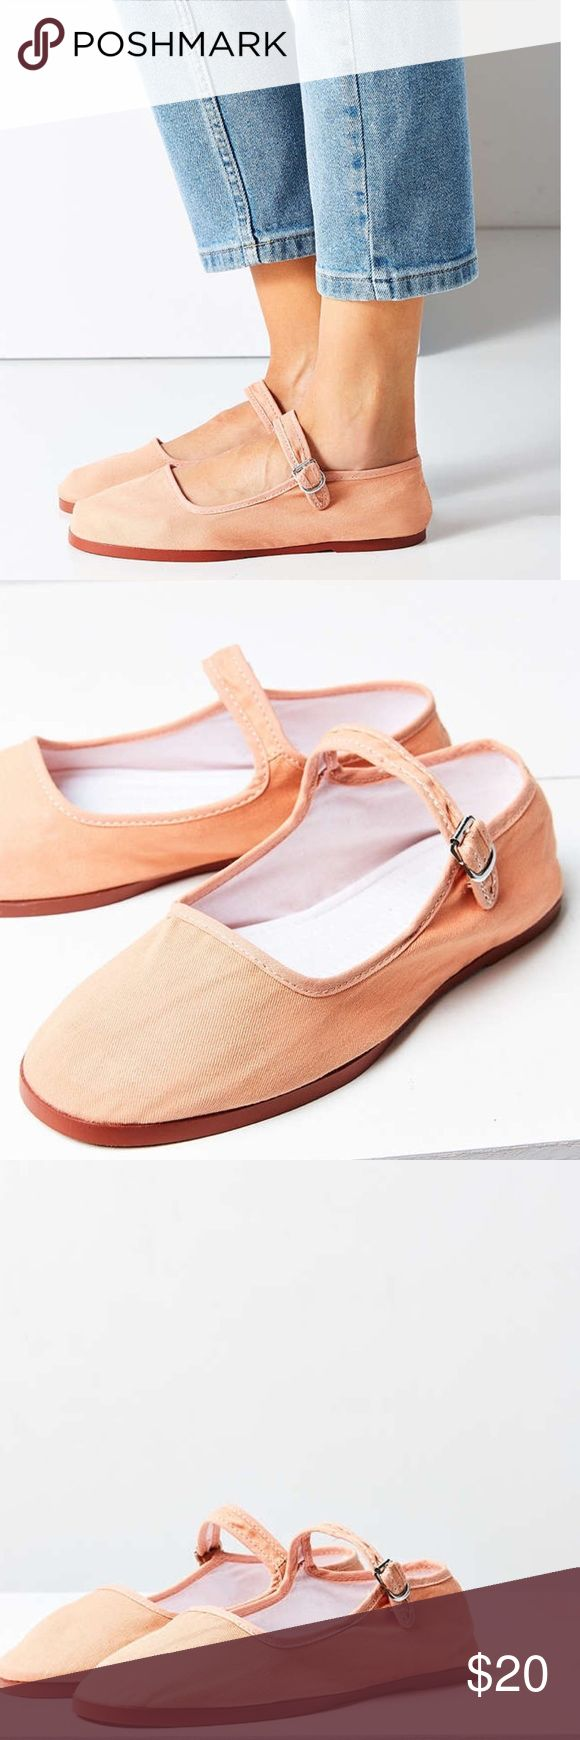 Back in STOCK cotton Mary Jane shoes Brand new in package!!!  These are great cotton Mary Jane flats!!!  Like and I'll tag you when they are in!!!  Peach color. Urban Outfitters Shoes Flats & Loafers